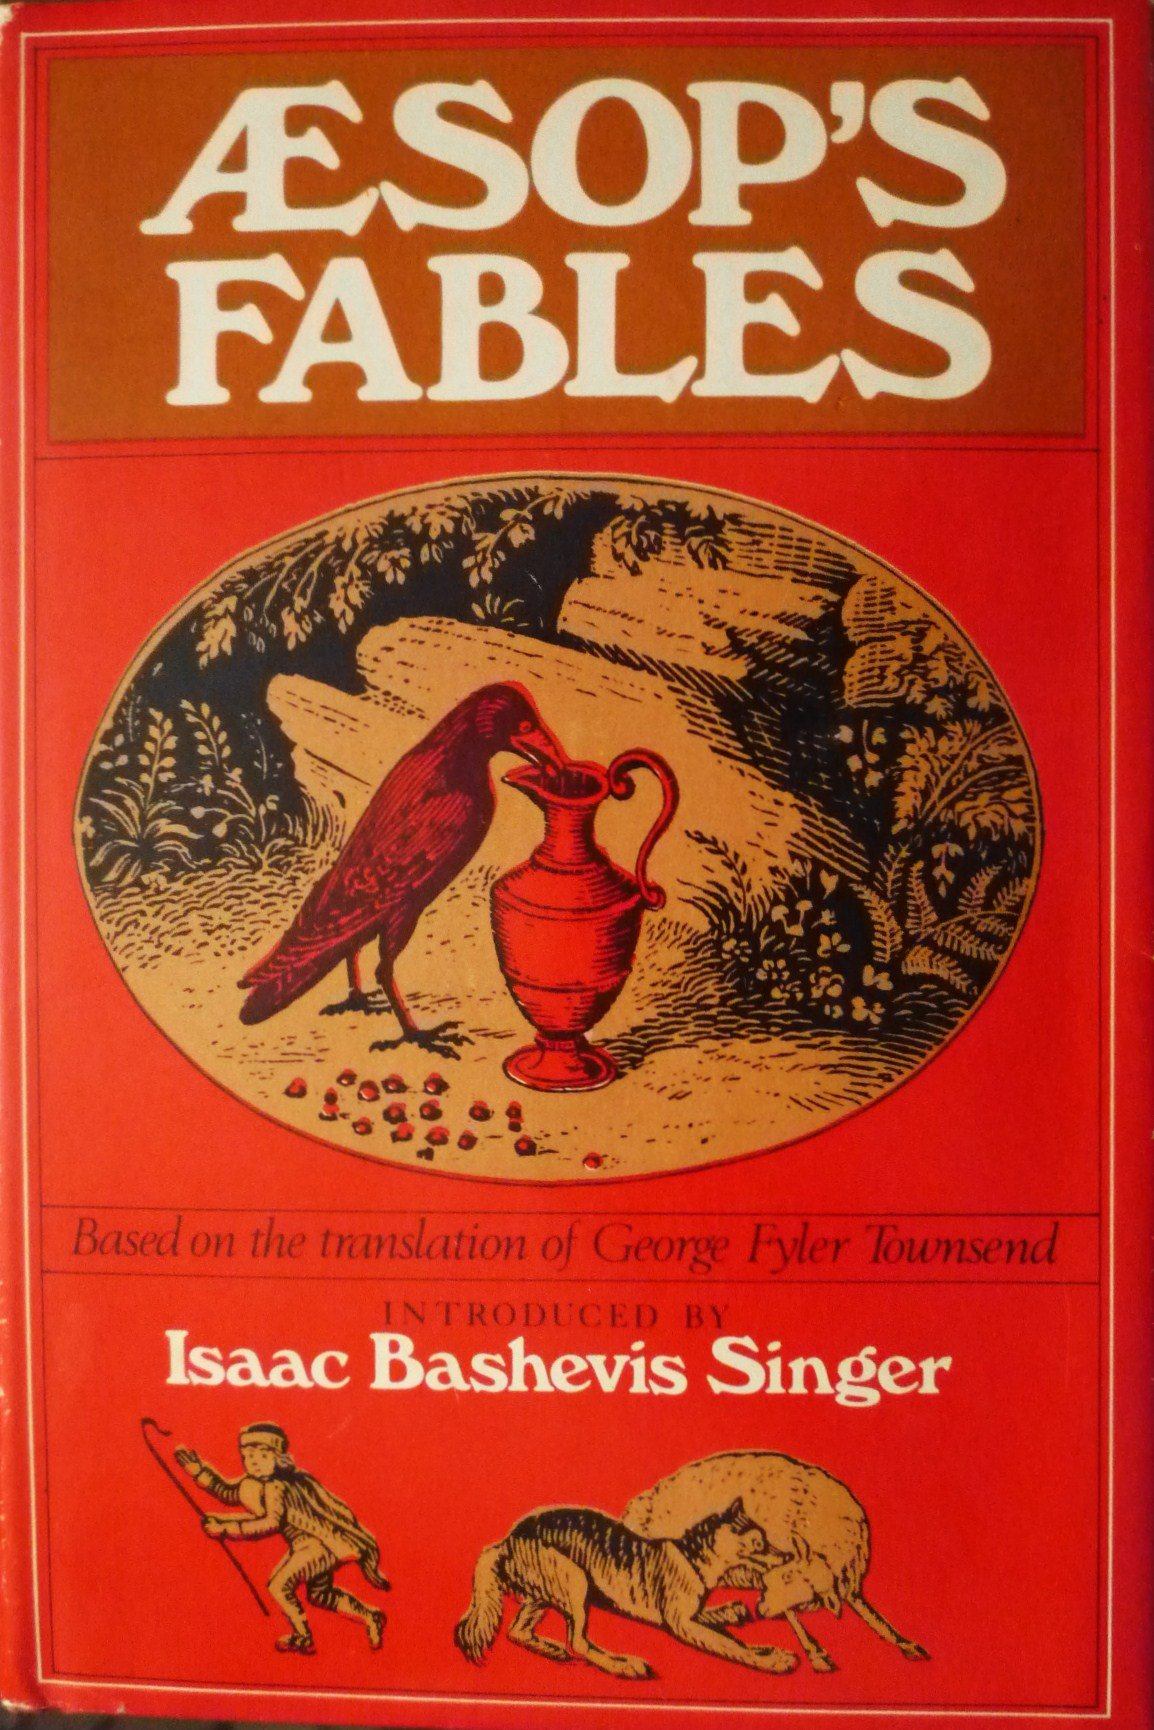 AESOP's Fables, Based on the translation of George Fyler Townsend, George Fyler Townsend